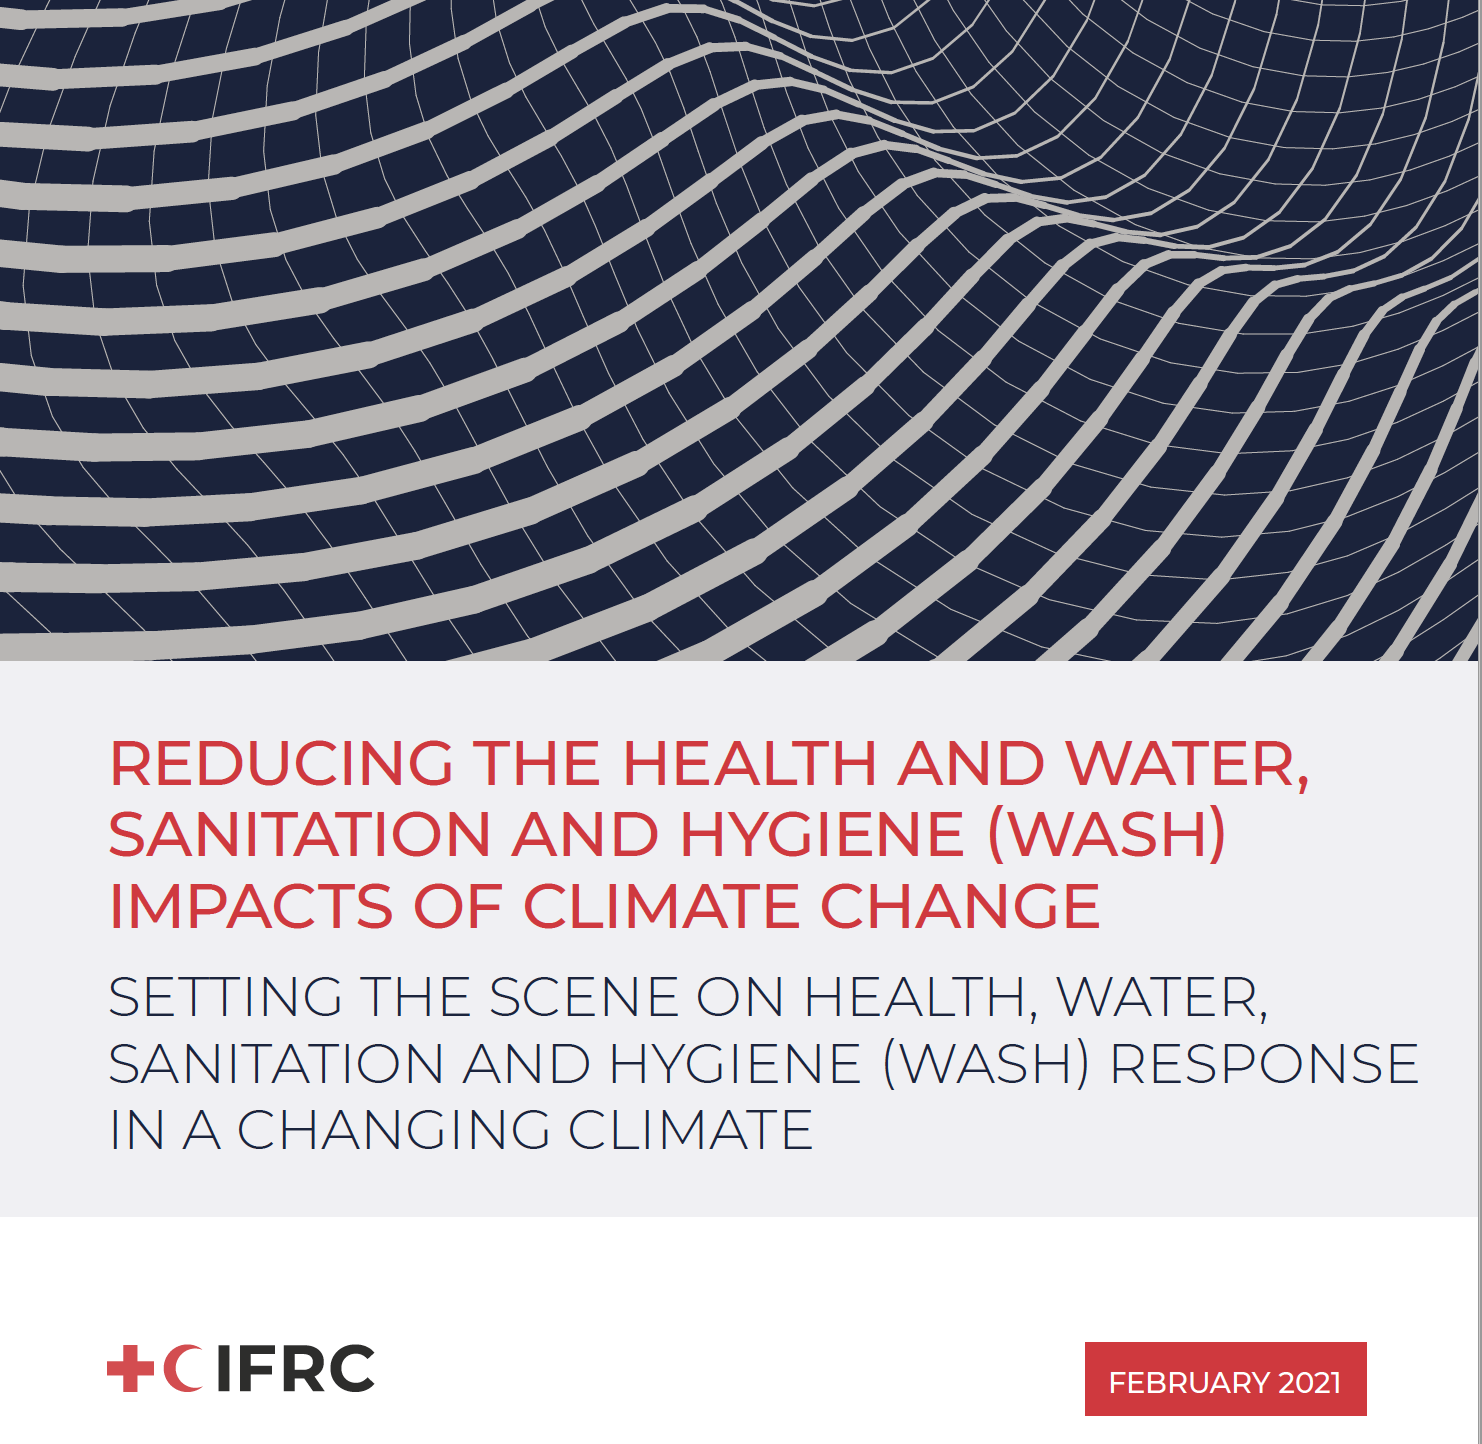 Reducing the Health and Water, Sanitation and Hygiene (WASH) Impacts of Climate Change